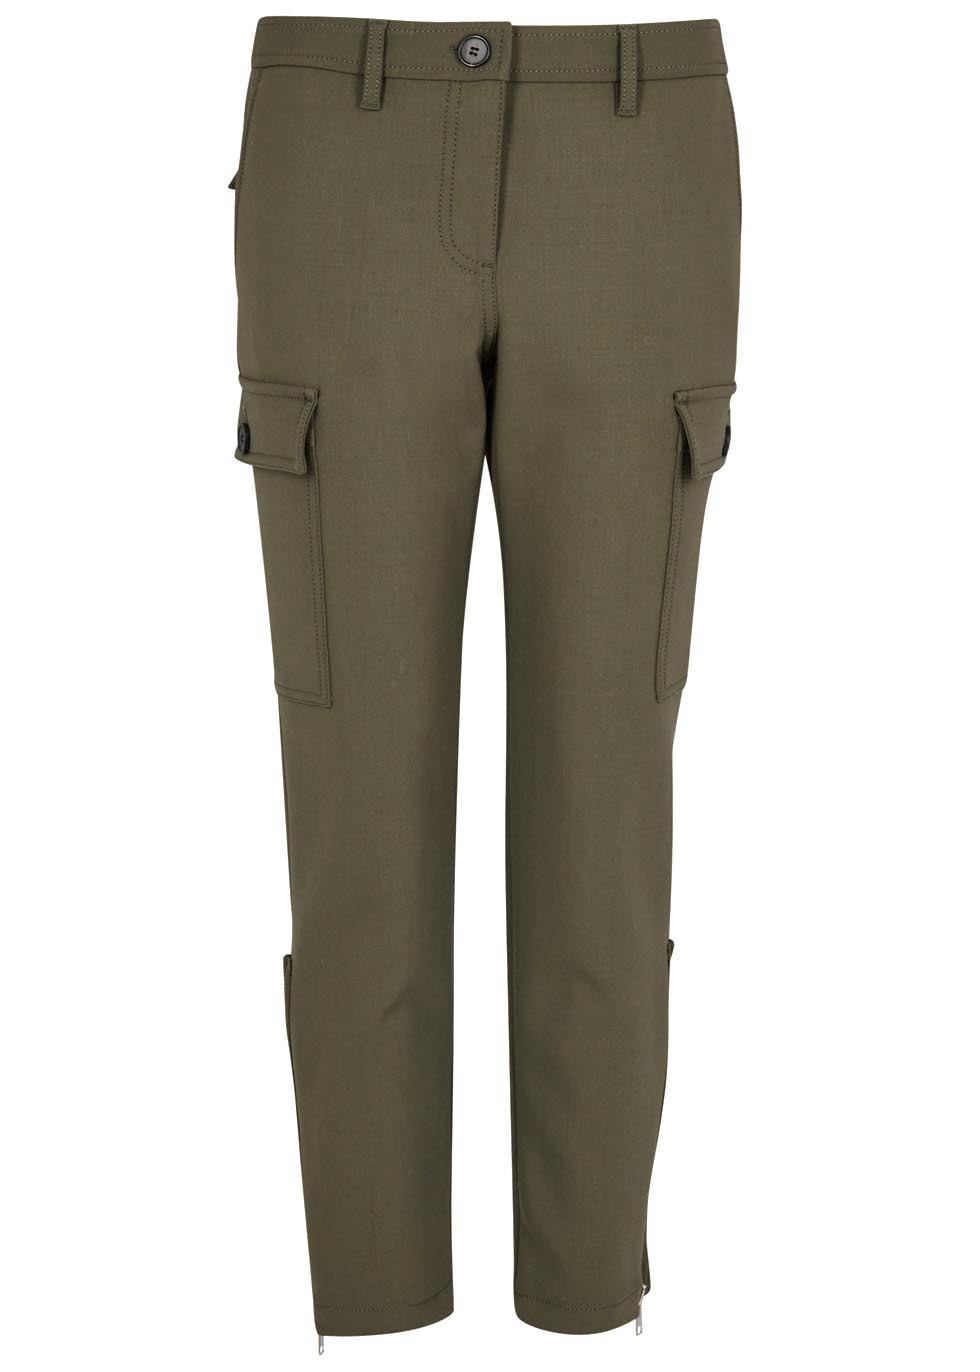 Olive Cropped Stretch Wool Trousers - pattern: plain; waist: mid/regular rise; style: cargo; predominant colour: khaki; occasions: casual, creative work; length: ankle length; fibres: wool - mix; waist detail: narrow waistband; fit: slim leg; pattern type: fabric; texture group: woven light midweight; wardrobe: basic; season: a/w 2016; trends: military